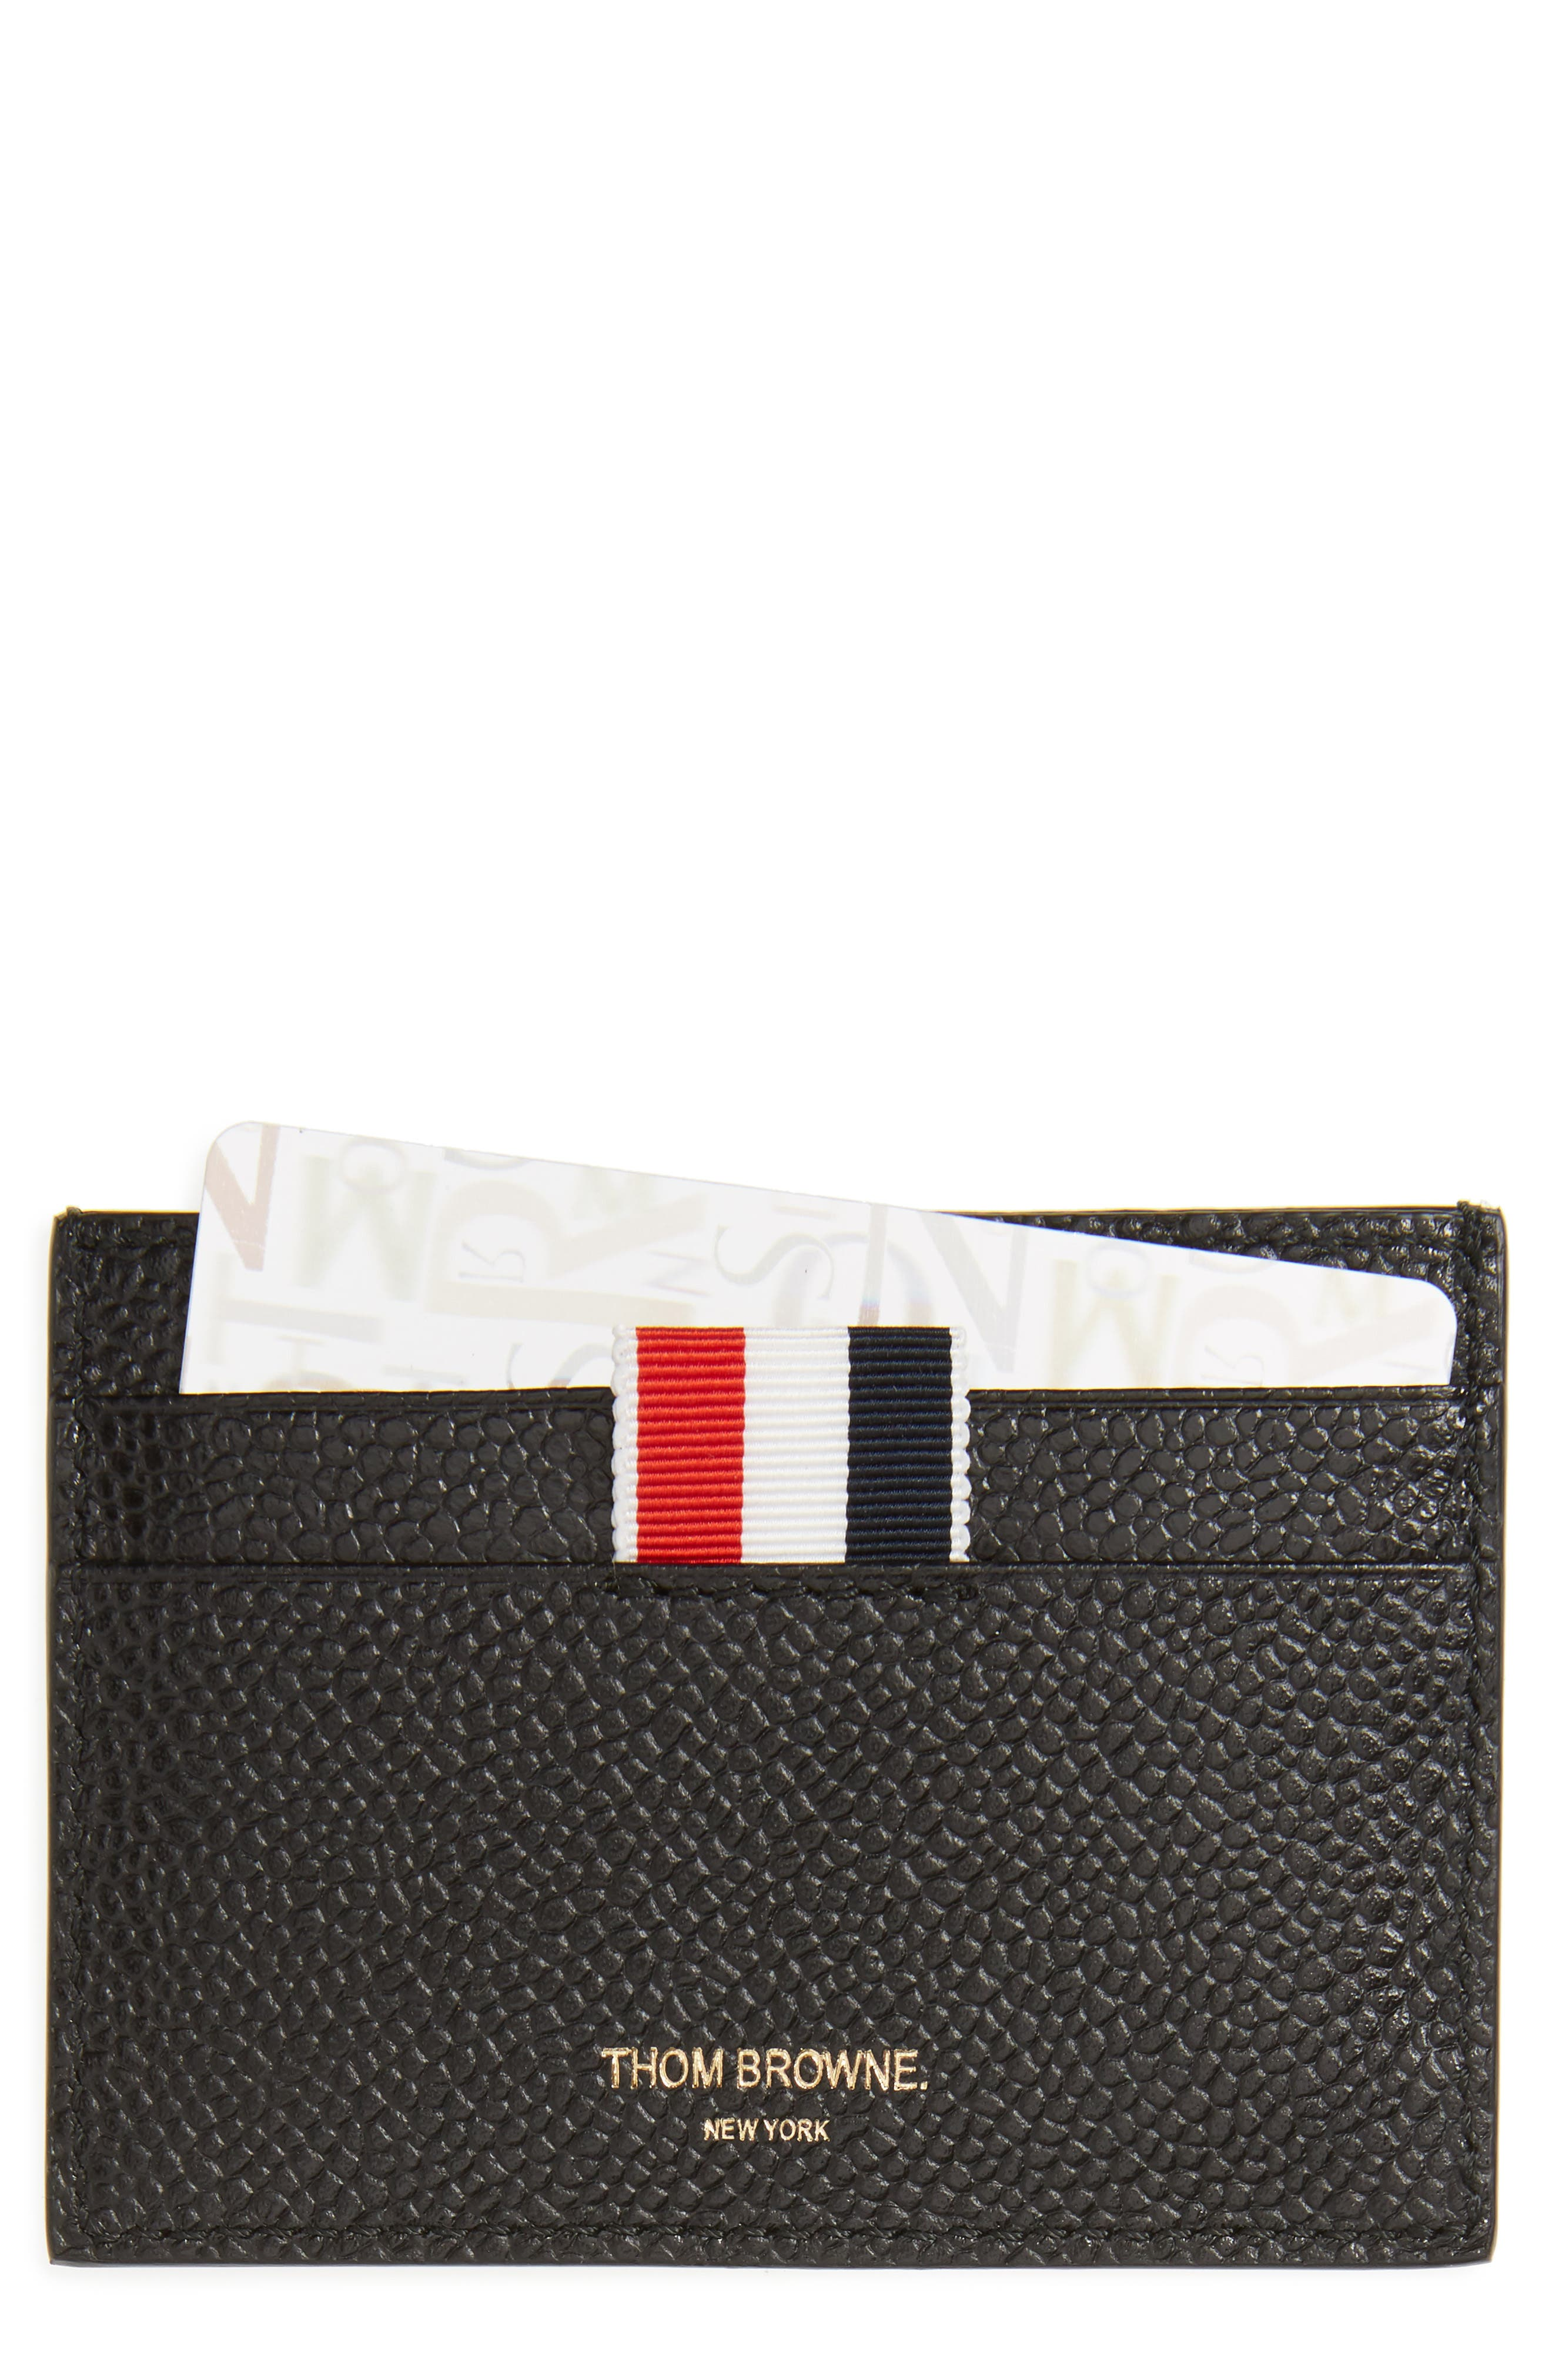 Thom Browne Diagonal Stripe Leather Card Case